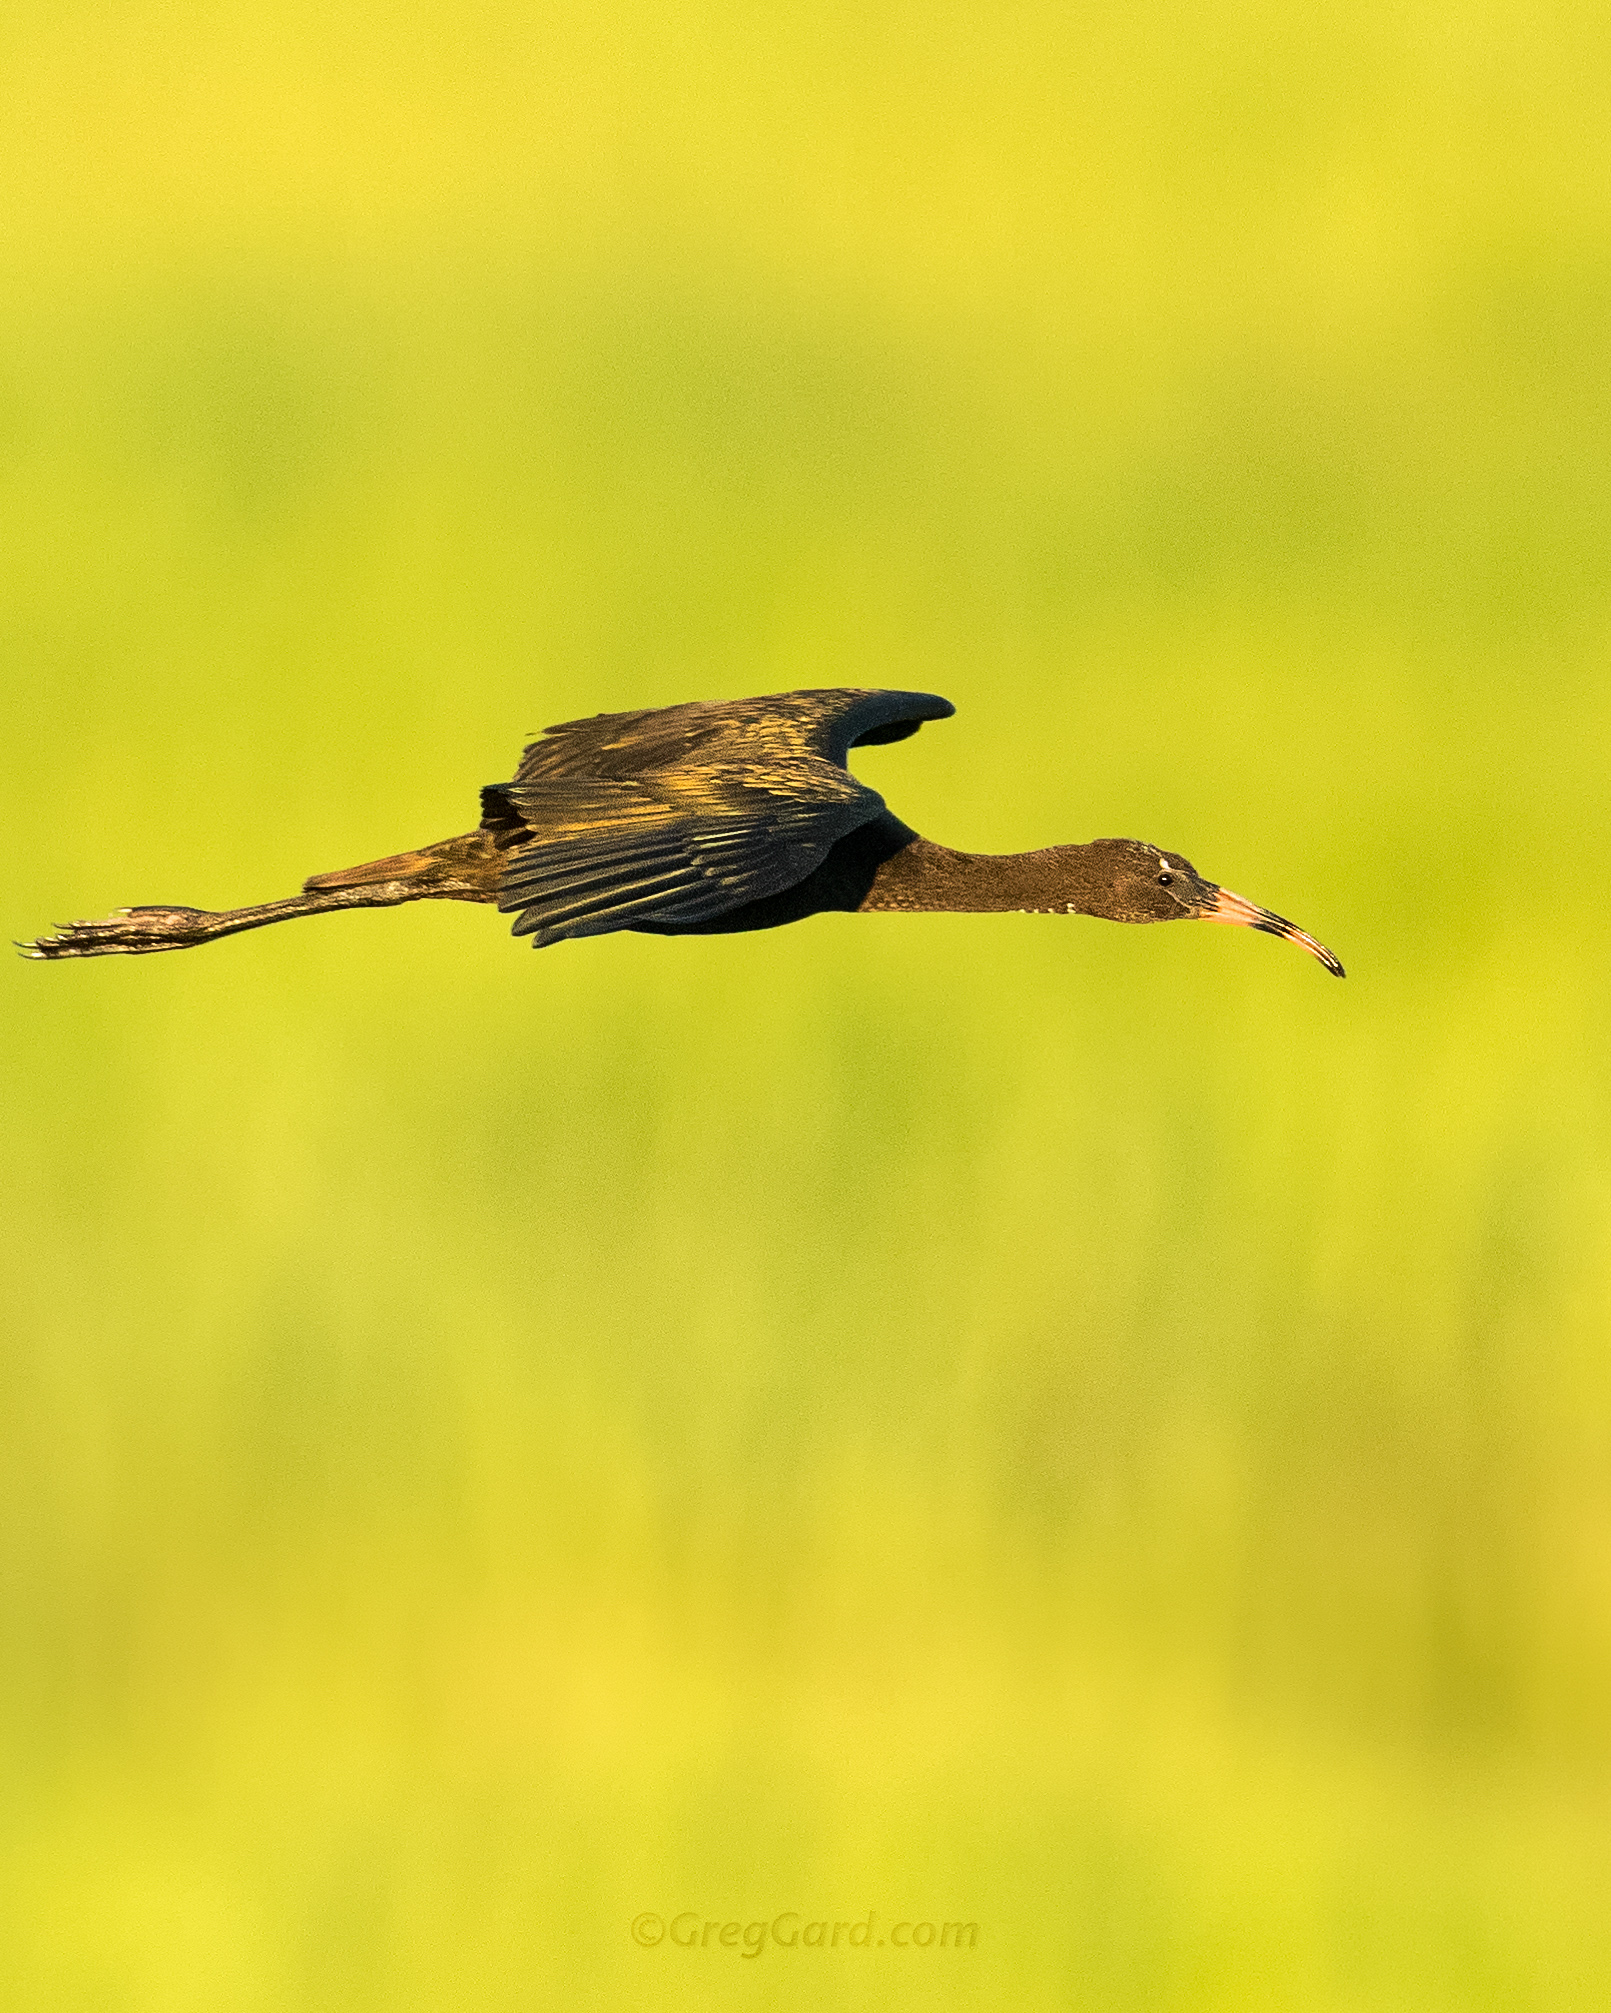 glossy-ibis-juvenile-flying-ocean-city-rookery-nj-bird-photography-greg-gard-878.jpg